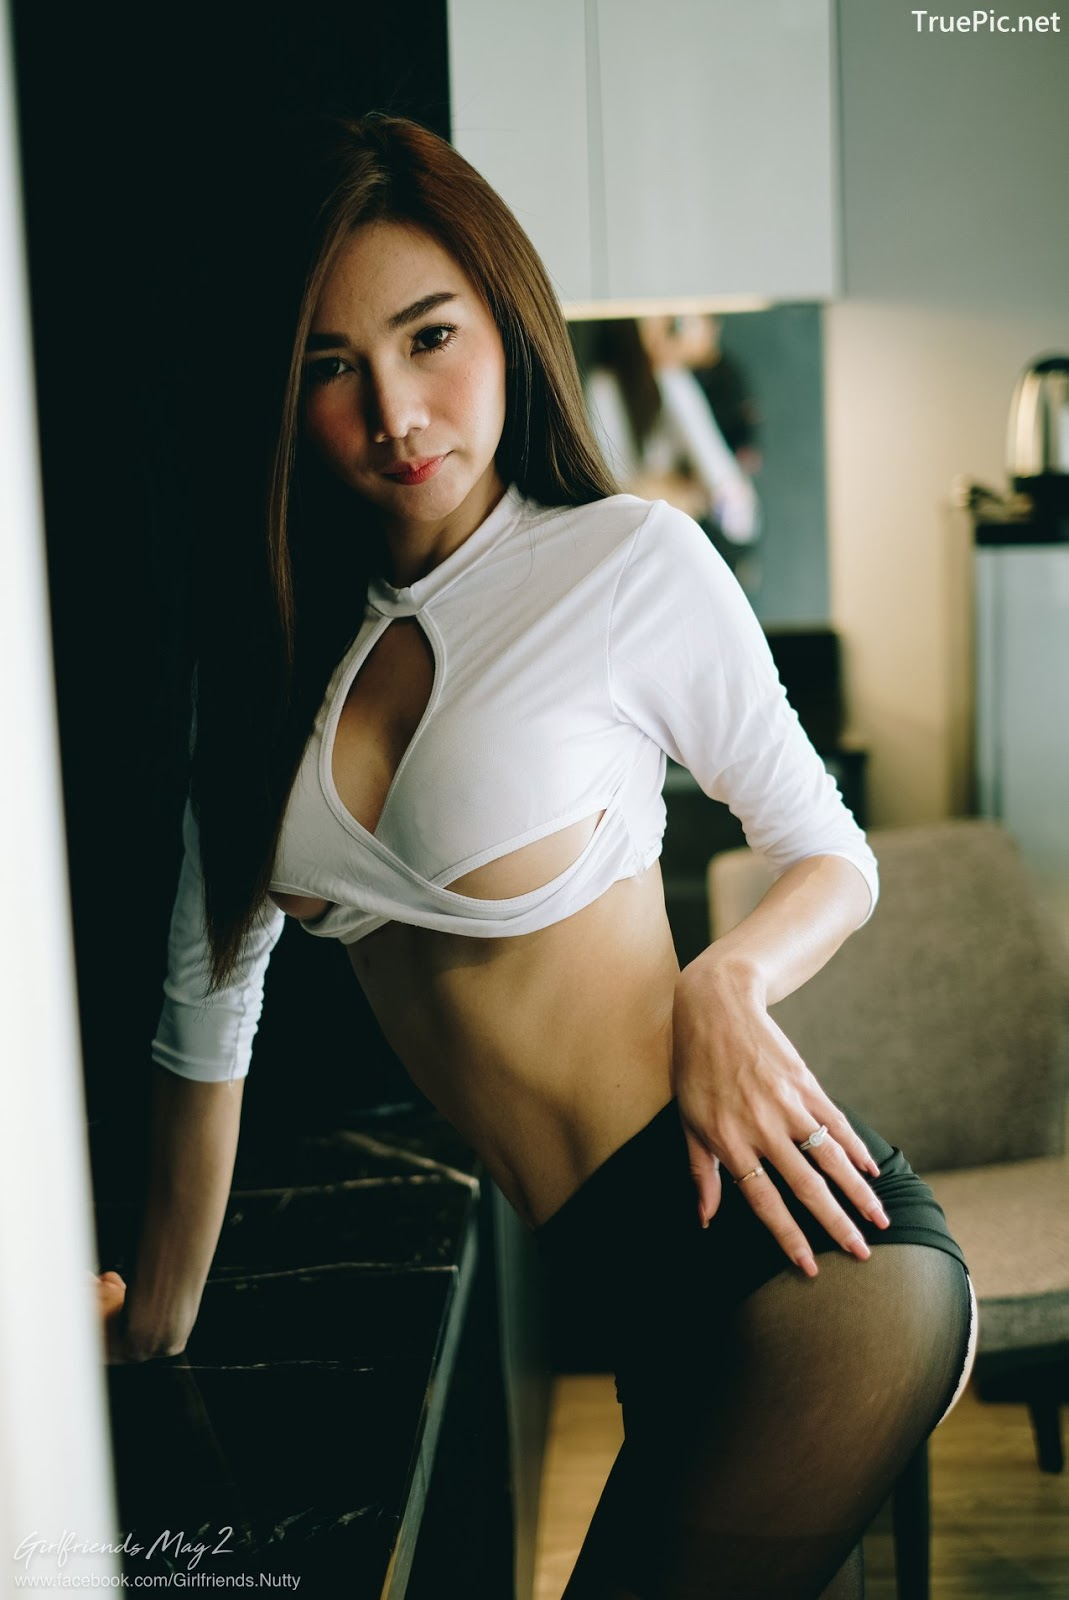 Image Thailand Model - Tadsanapon Kampan - WFH (Work from Hotel) - TruePic.net - Picture-6